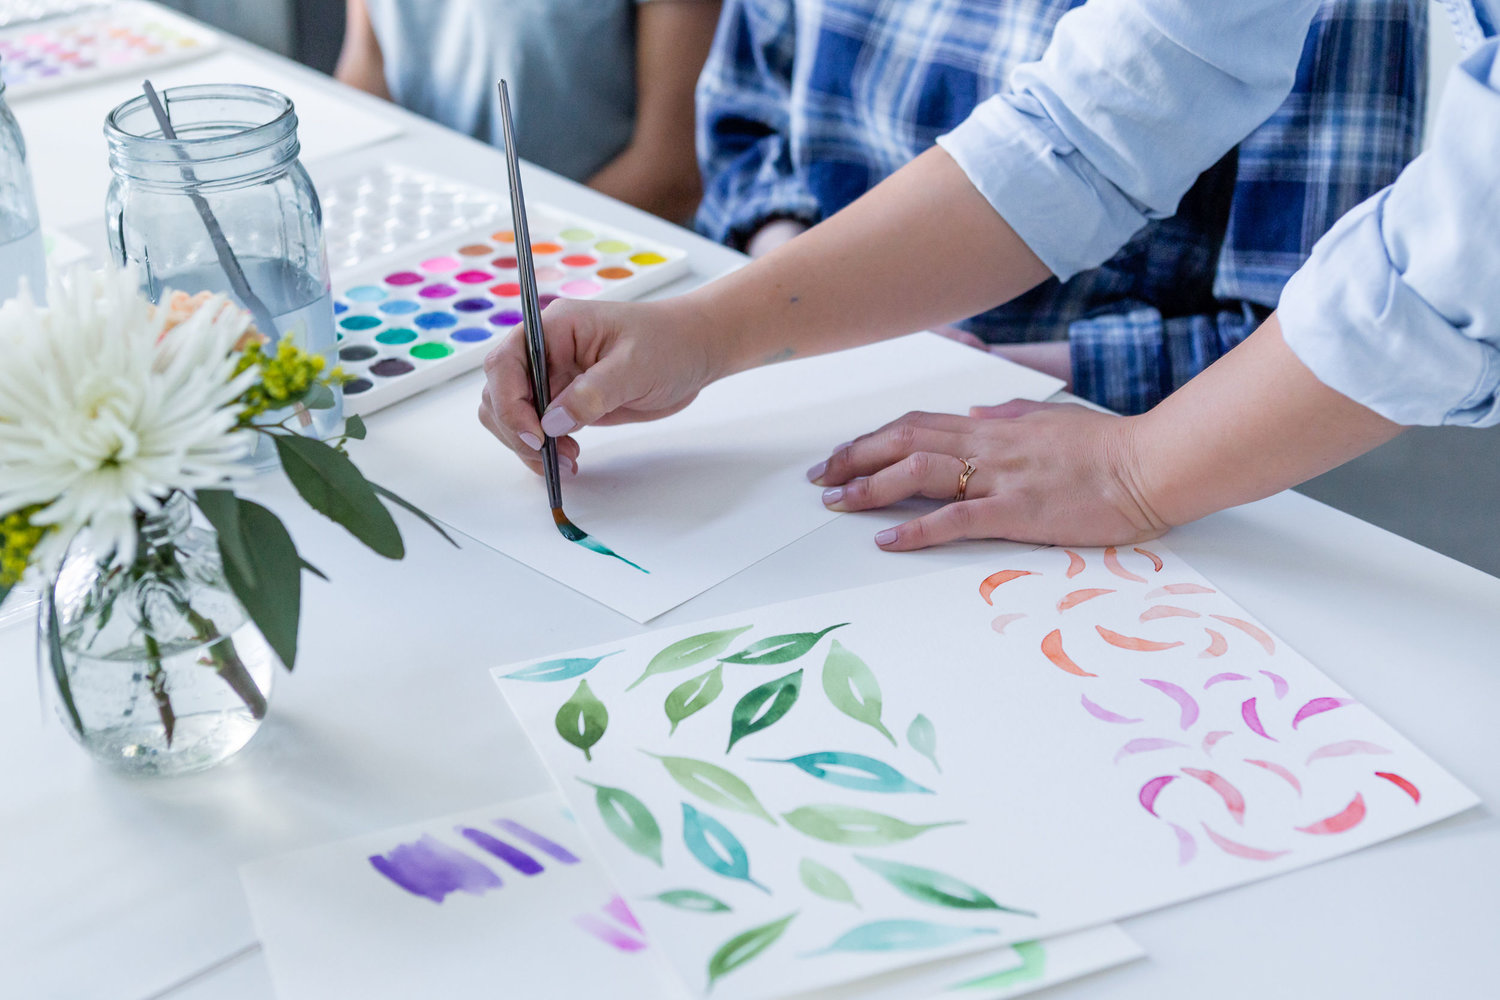 The Paper + Craft Pantry Blog: Watercolor floral workshop instructor helping to show different stroke techniques.